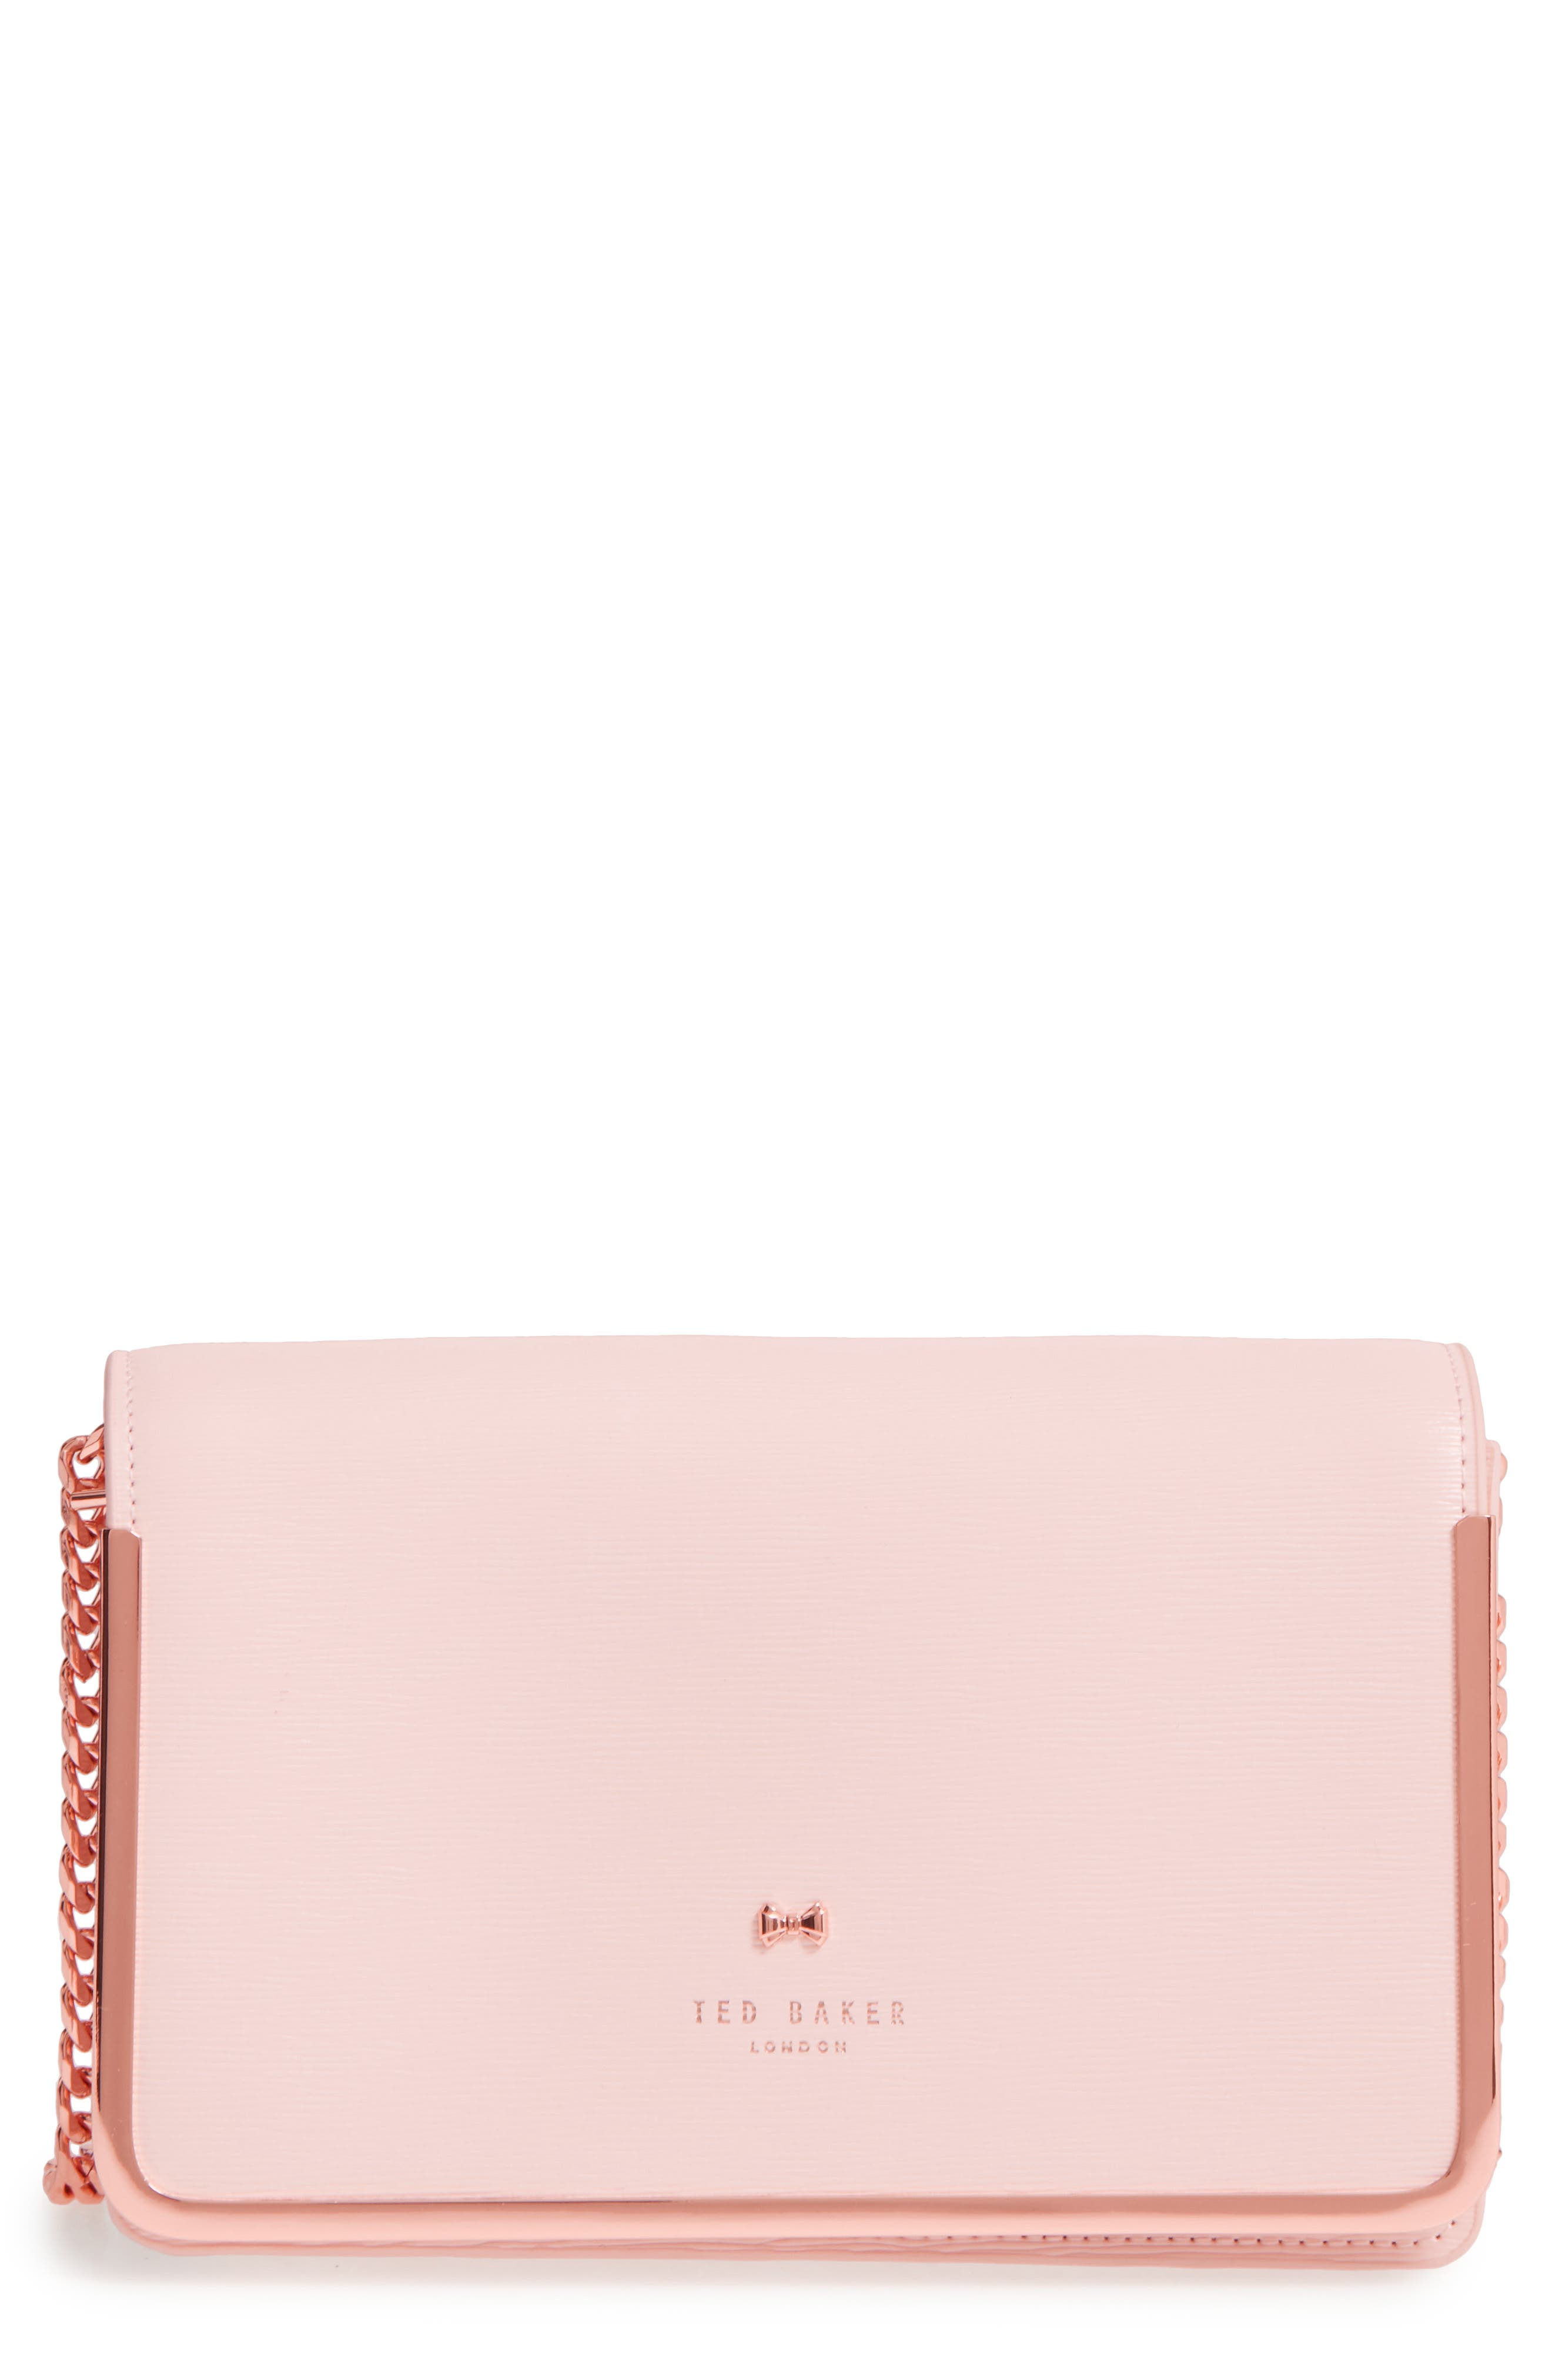 Ted Baker London Highbox Leather Convertible Clutch